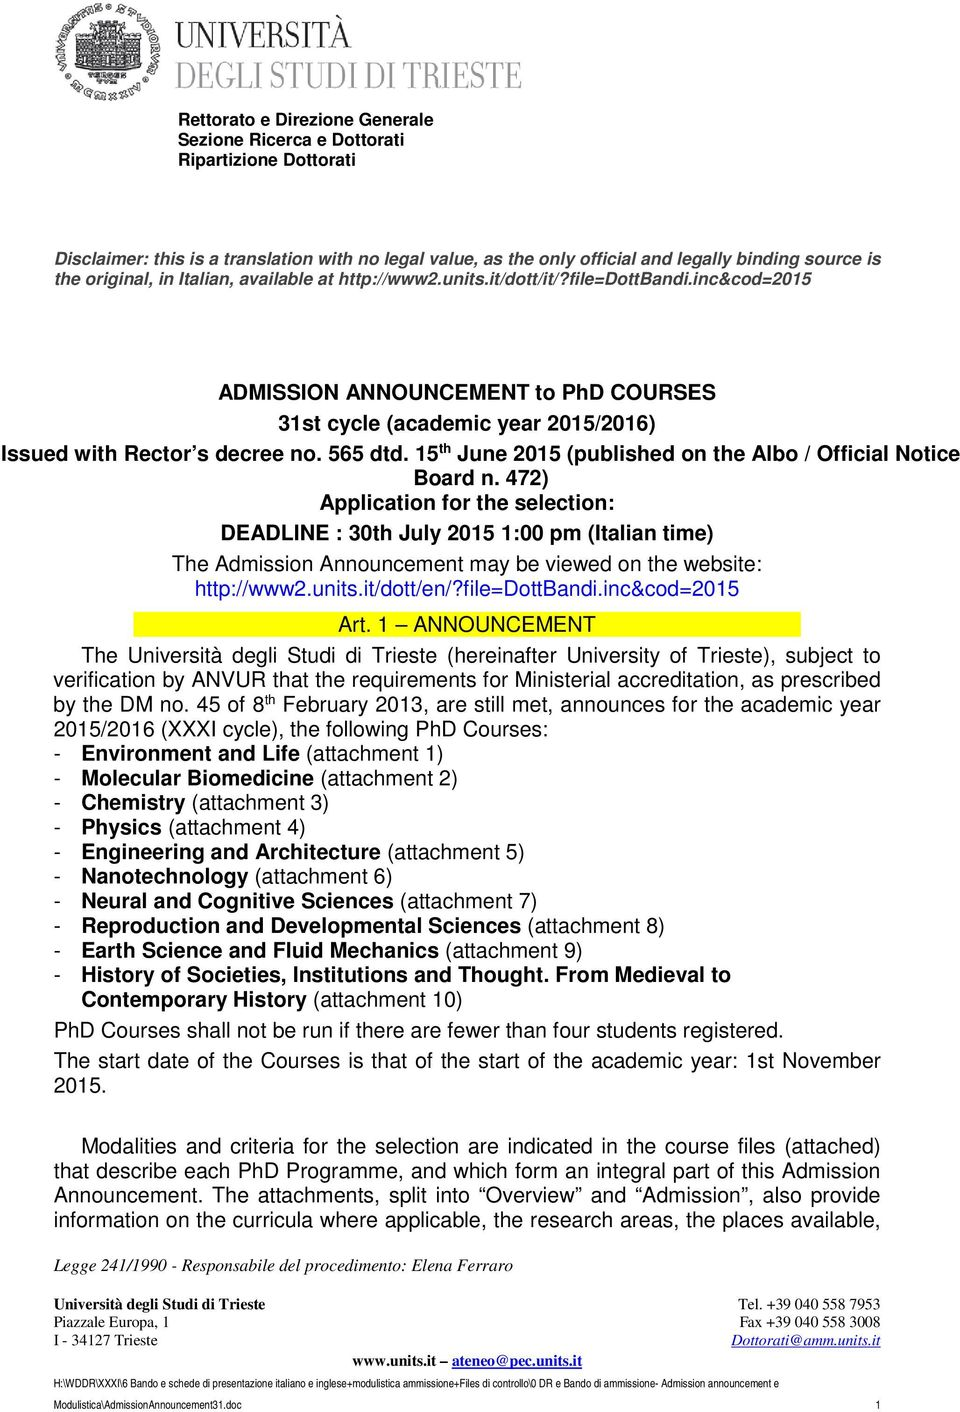 472) Application for the selection: DEADLINE : 30th July 2015 1:00 pm (Italian time) The Admission Announcement may be viewed on the website: http://www2.units.it/dott/en/?file=dottbandi.